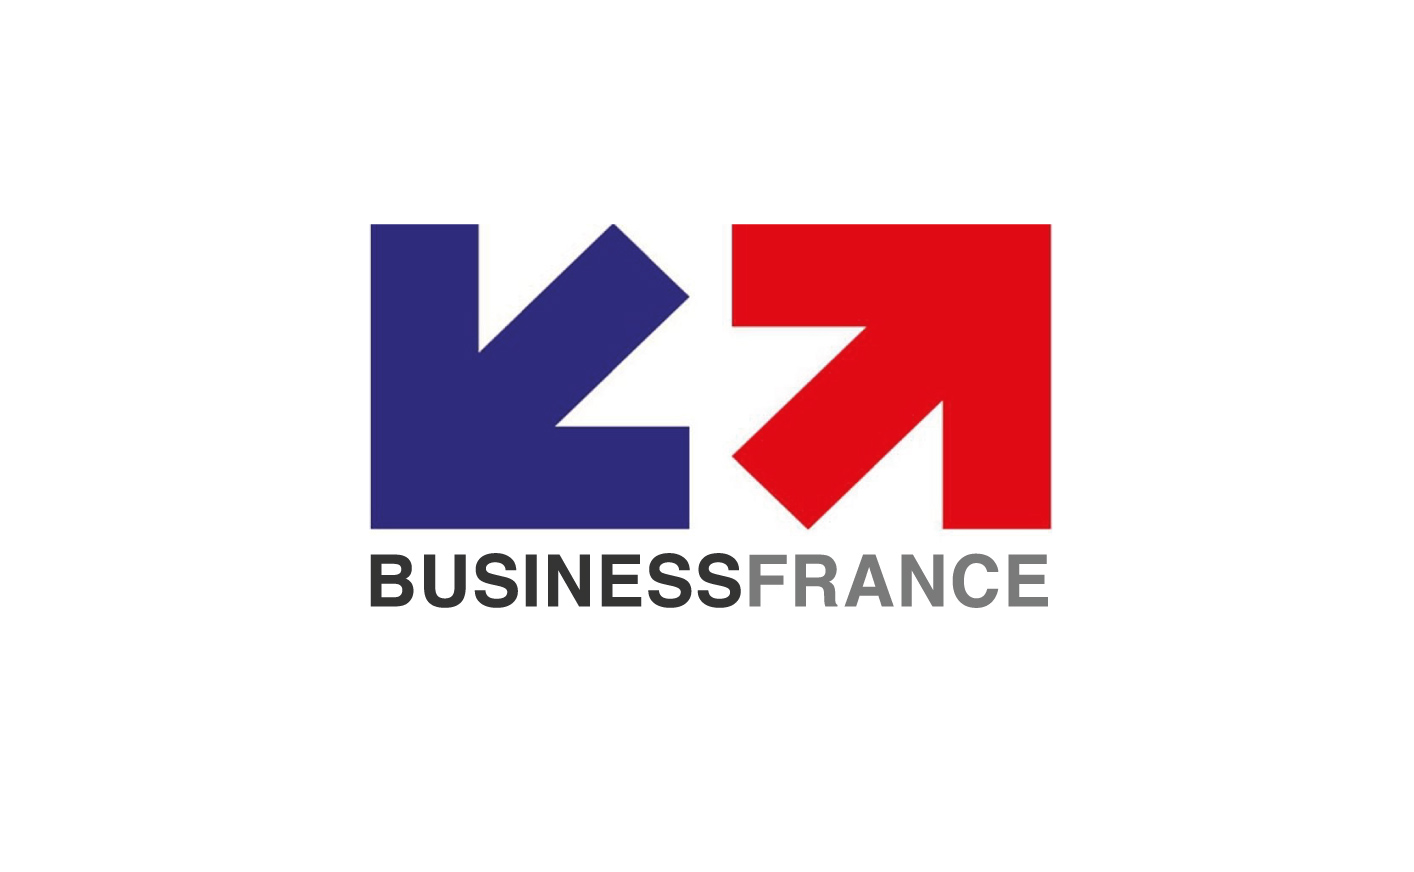 logo-business-france.jpg